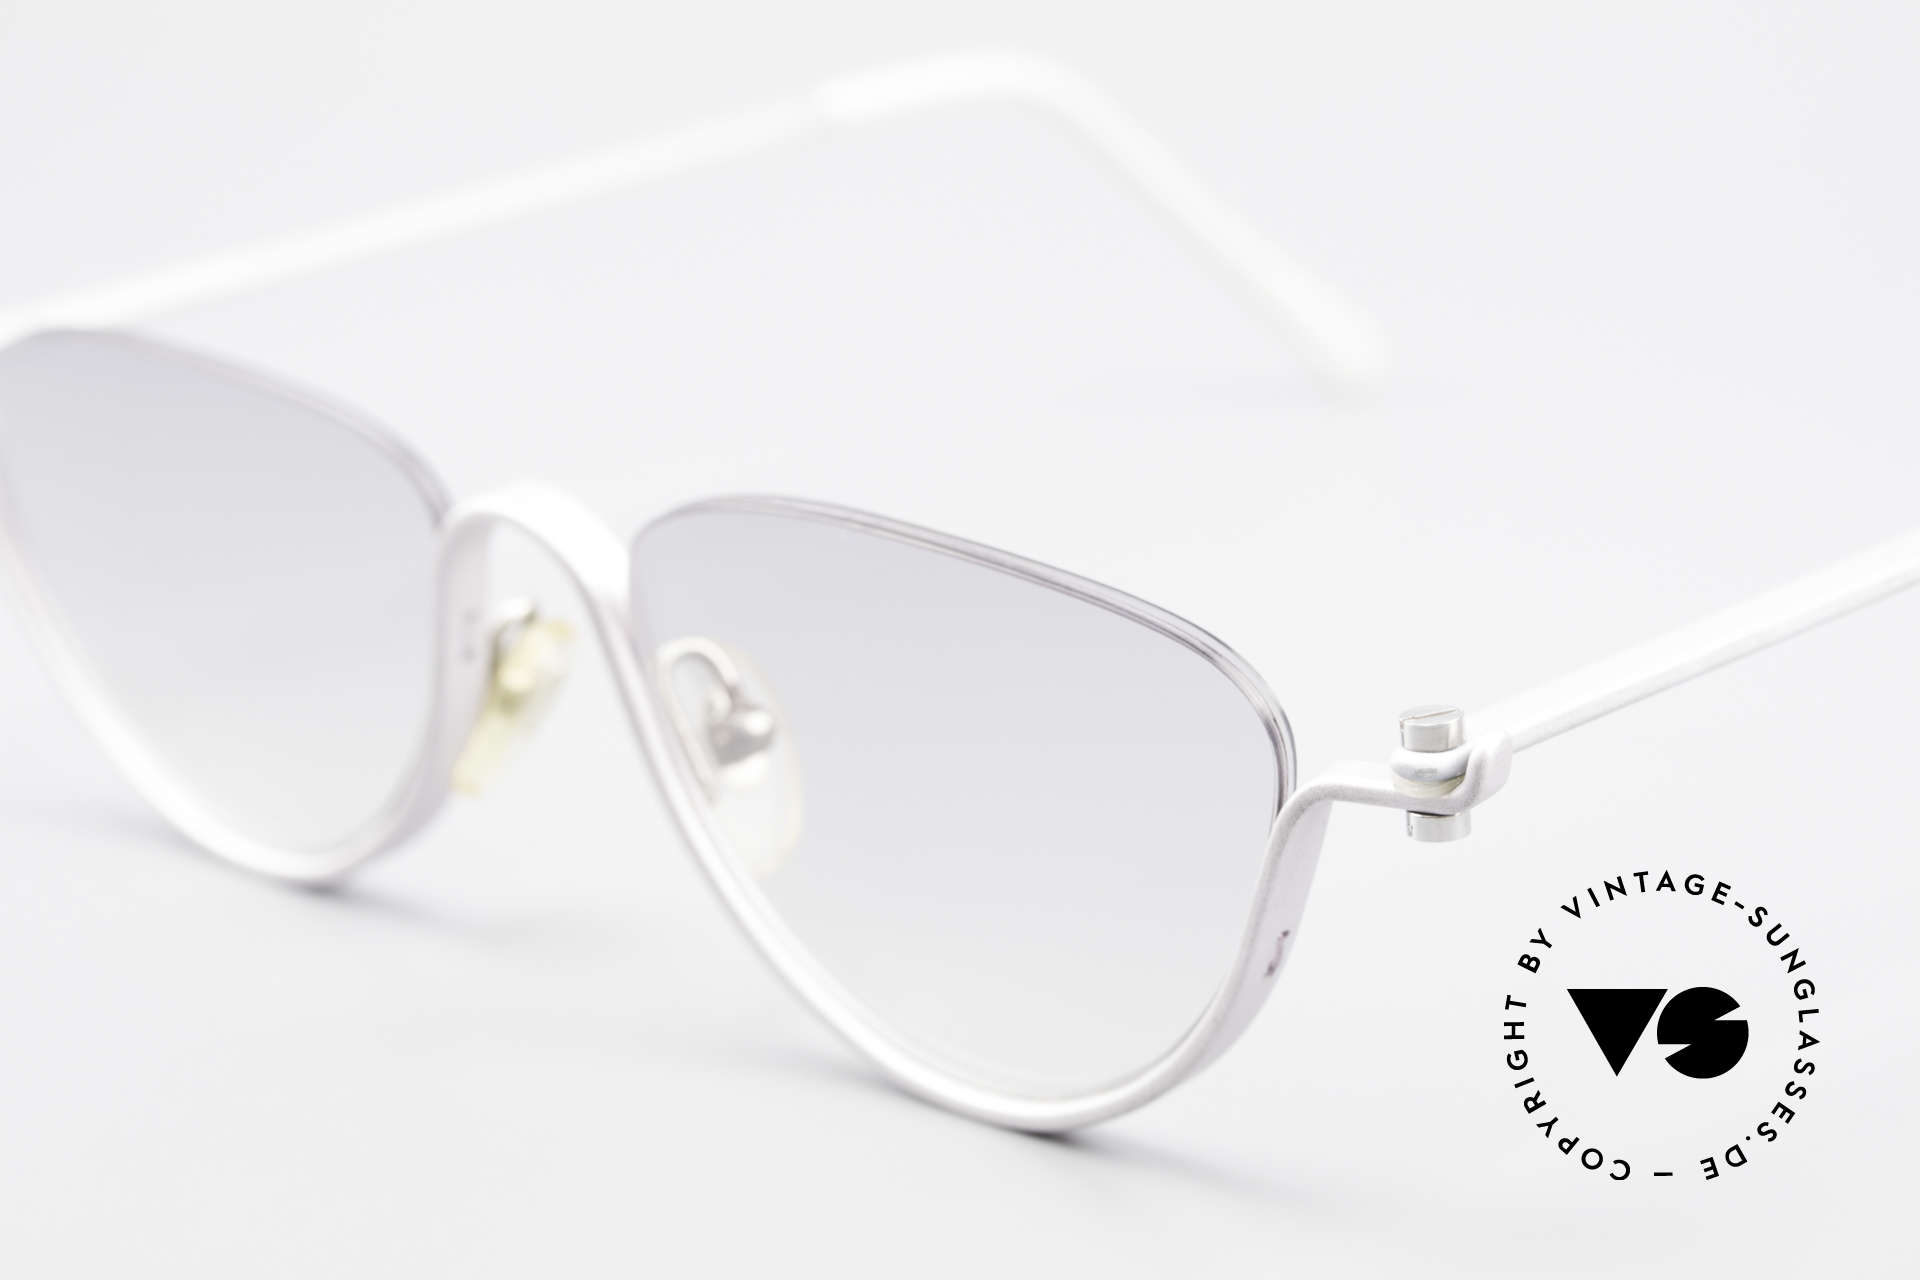 ProDesign No10 Gail Spence Design Sunglasses, N°ONE worn in the movie 'The Hunt For Red October', Made for Women